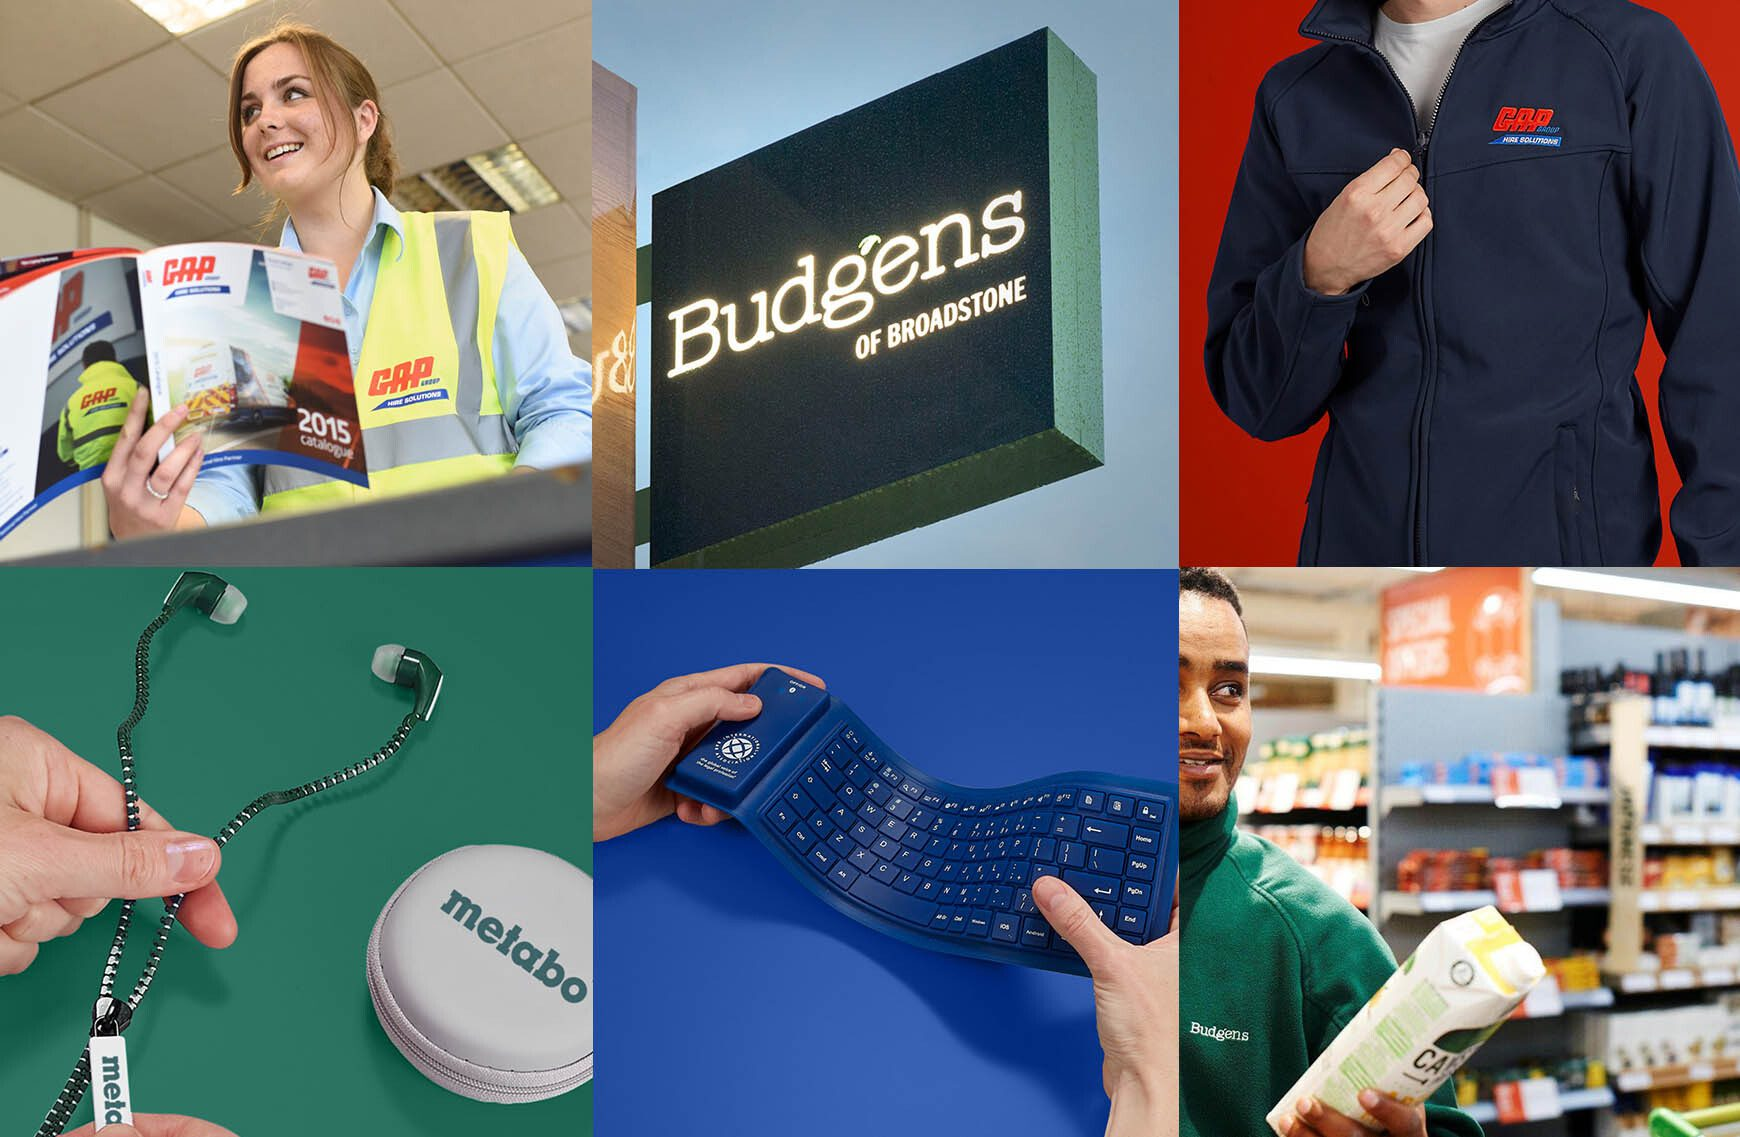 Collage of various images of branded merchandise